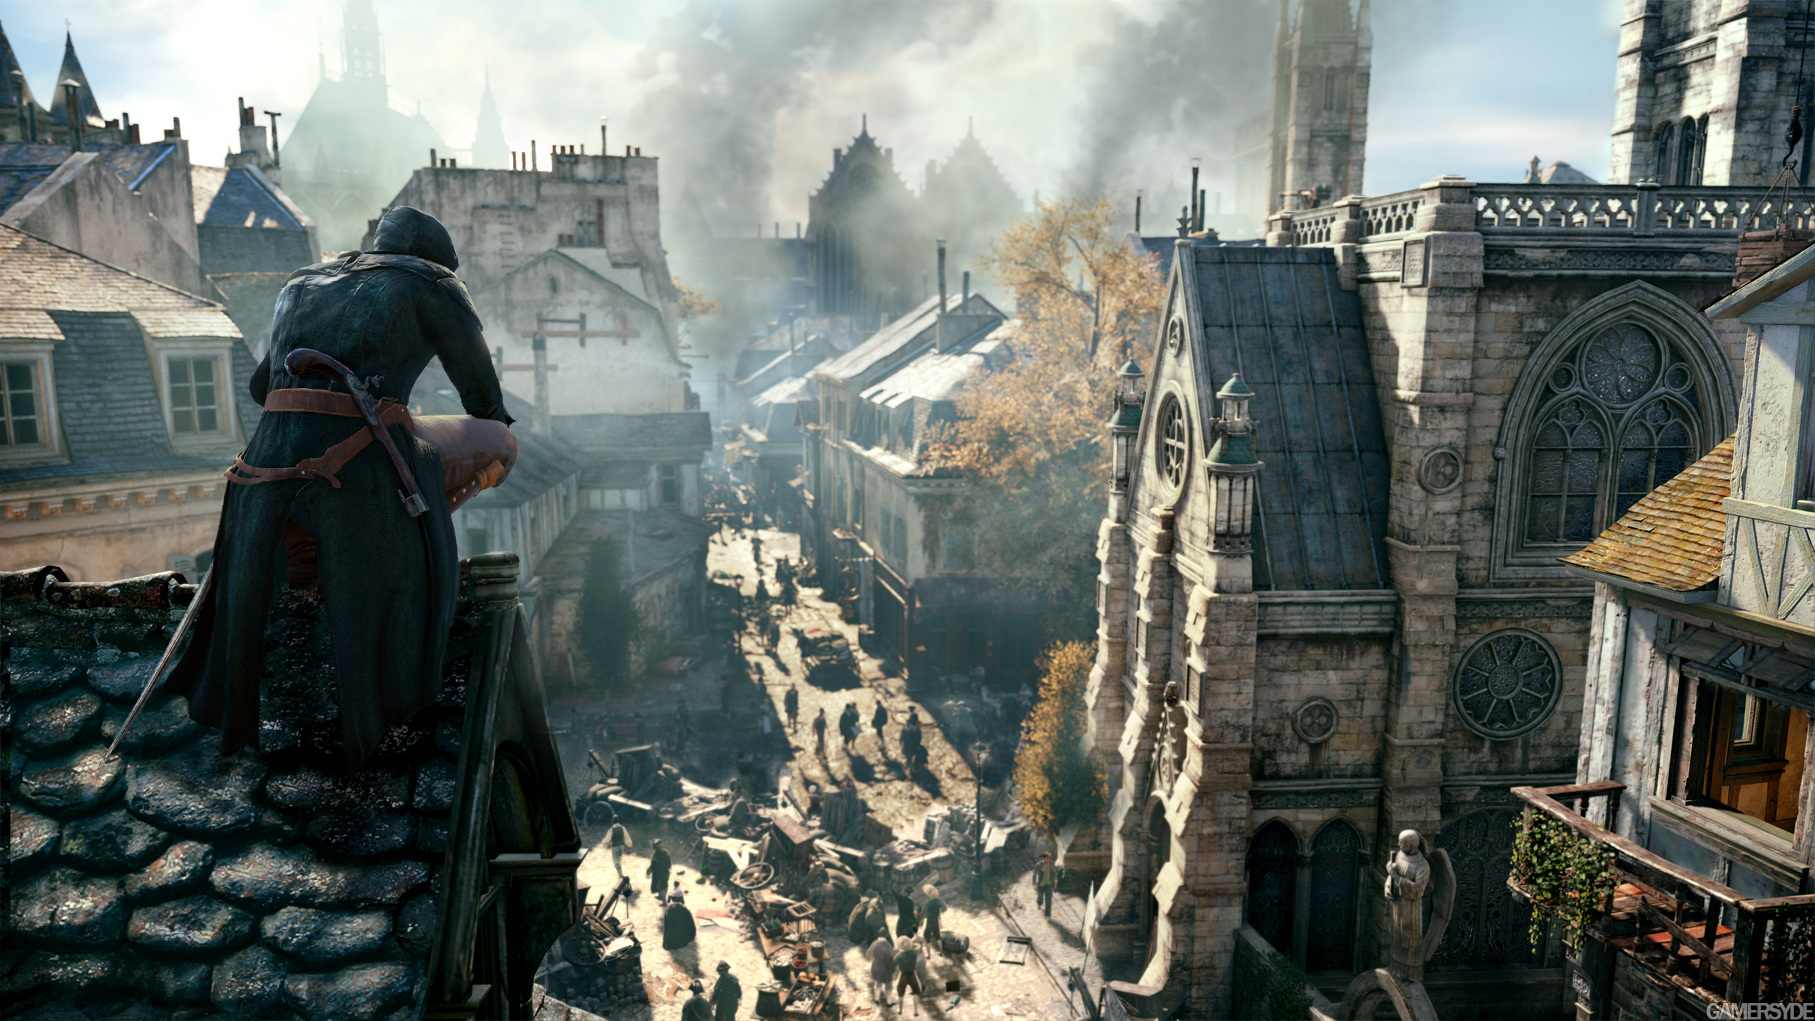 image_assassin_s_creed_unity-25324-2908_0007